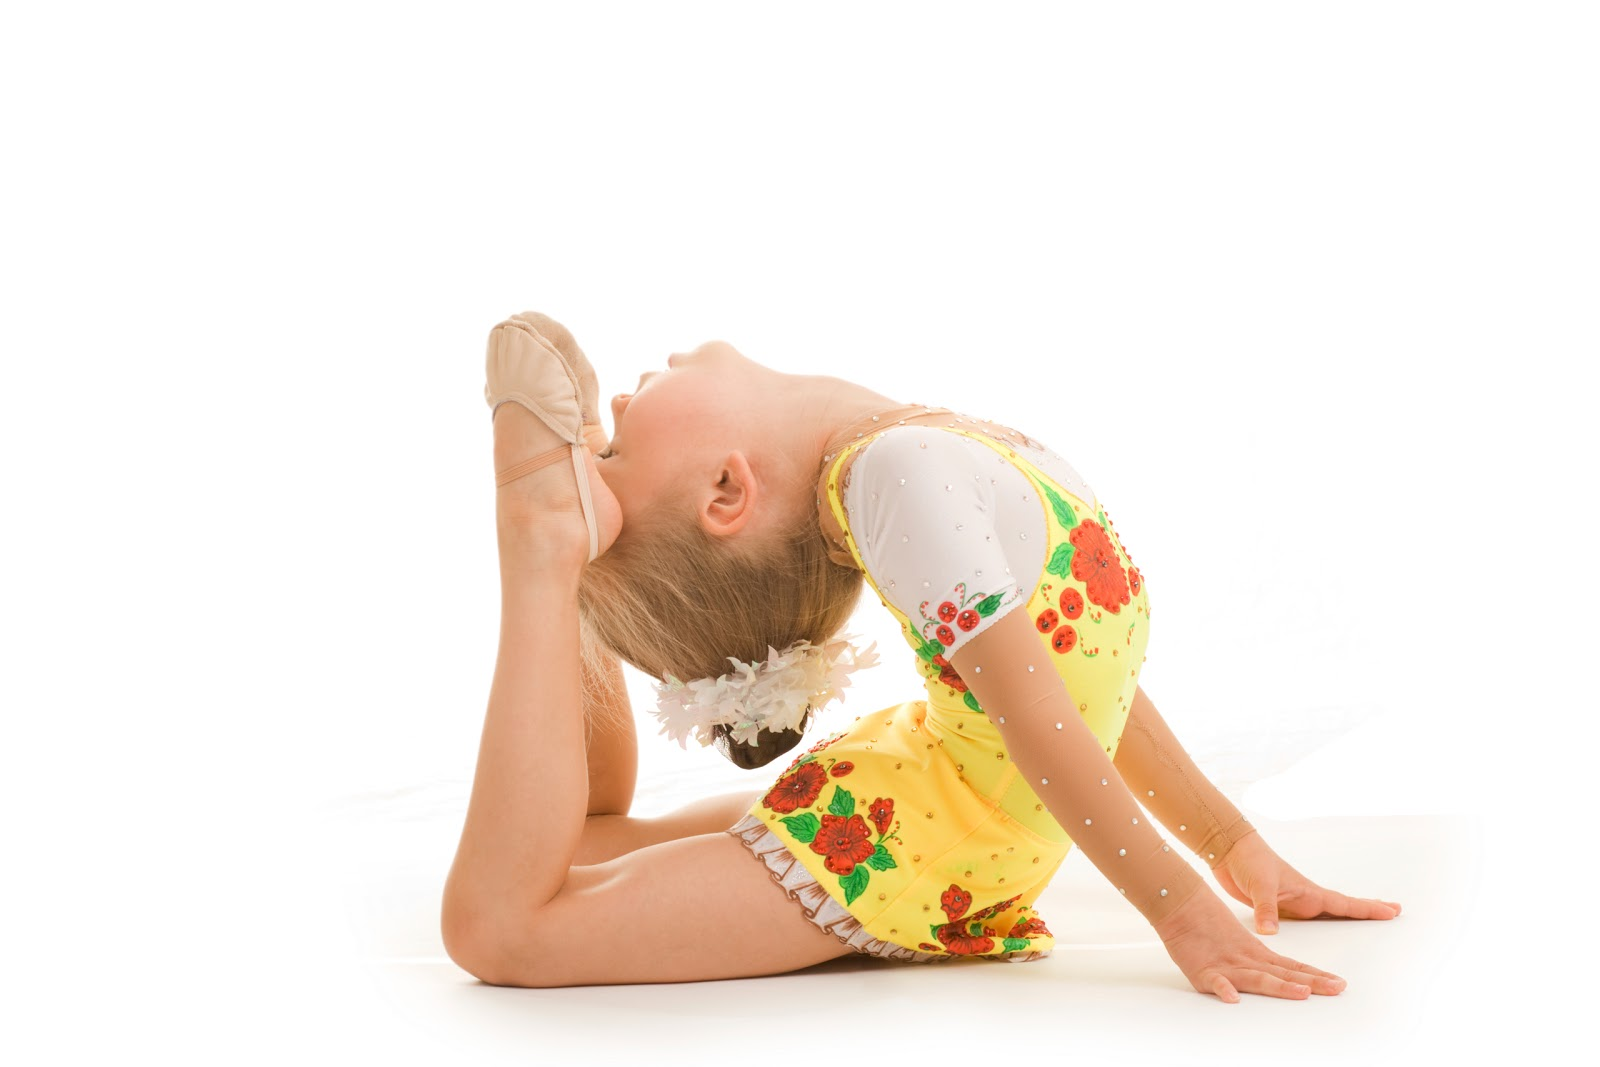 Yoga Teacher Training Yoga For Children Precautions For Parents